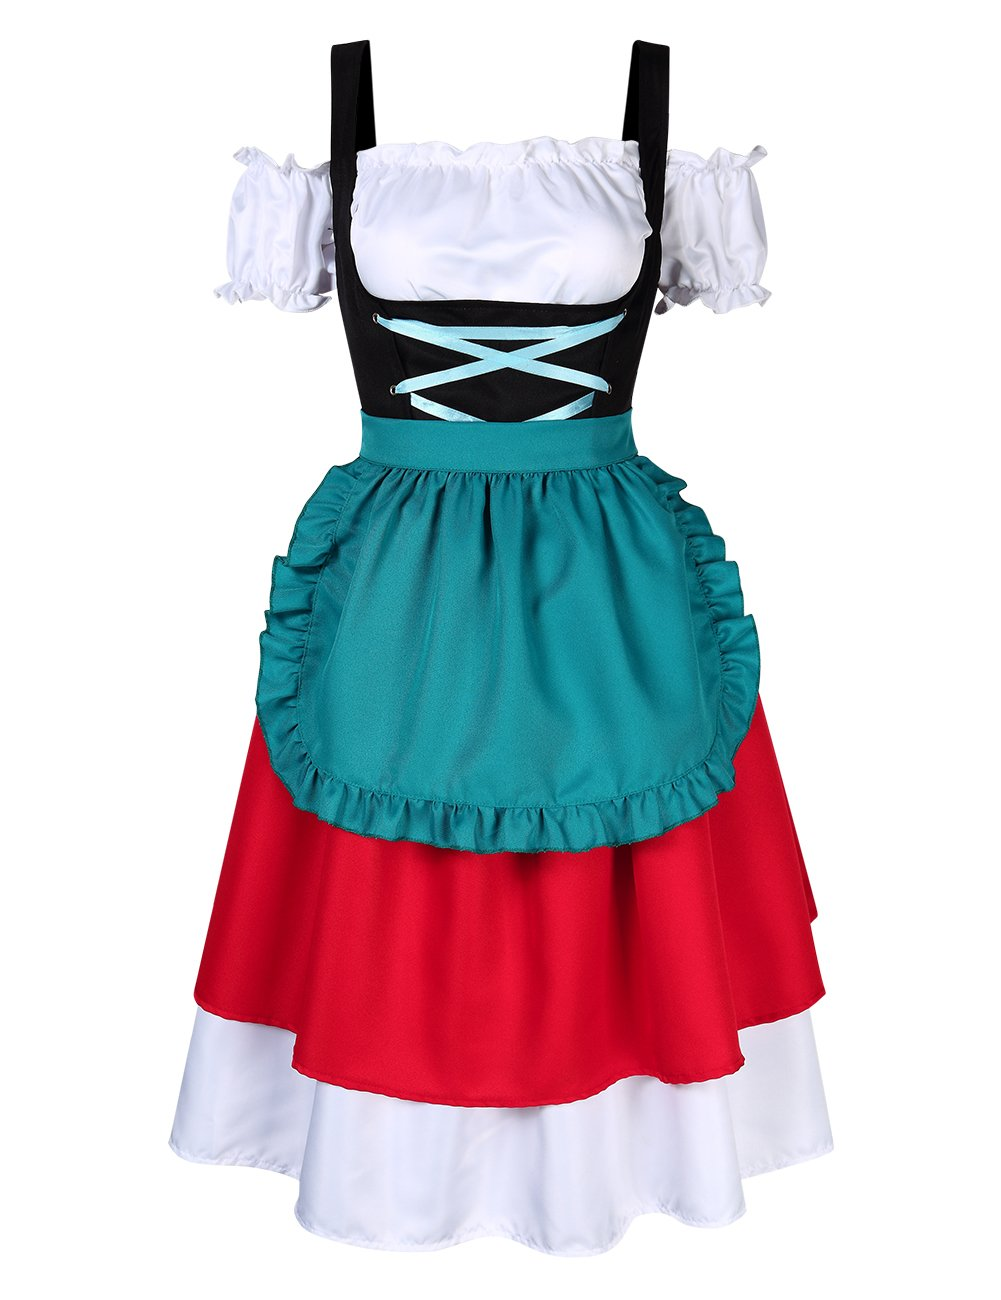 GloryStar Women's 3 Pcs German Dirndl Serving Wench Bavarian Oktoberfest Adult Costumes (S, Red/Green)